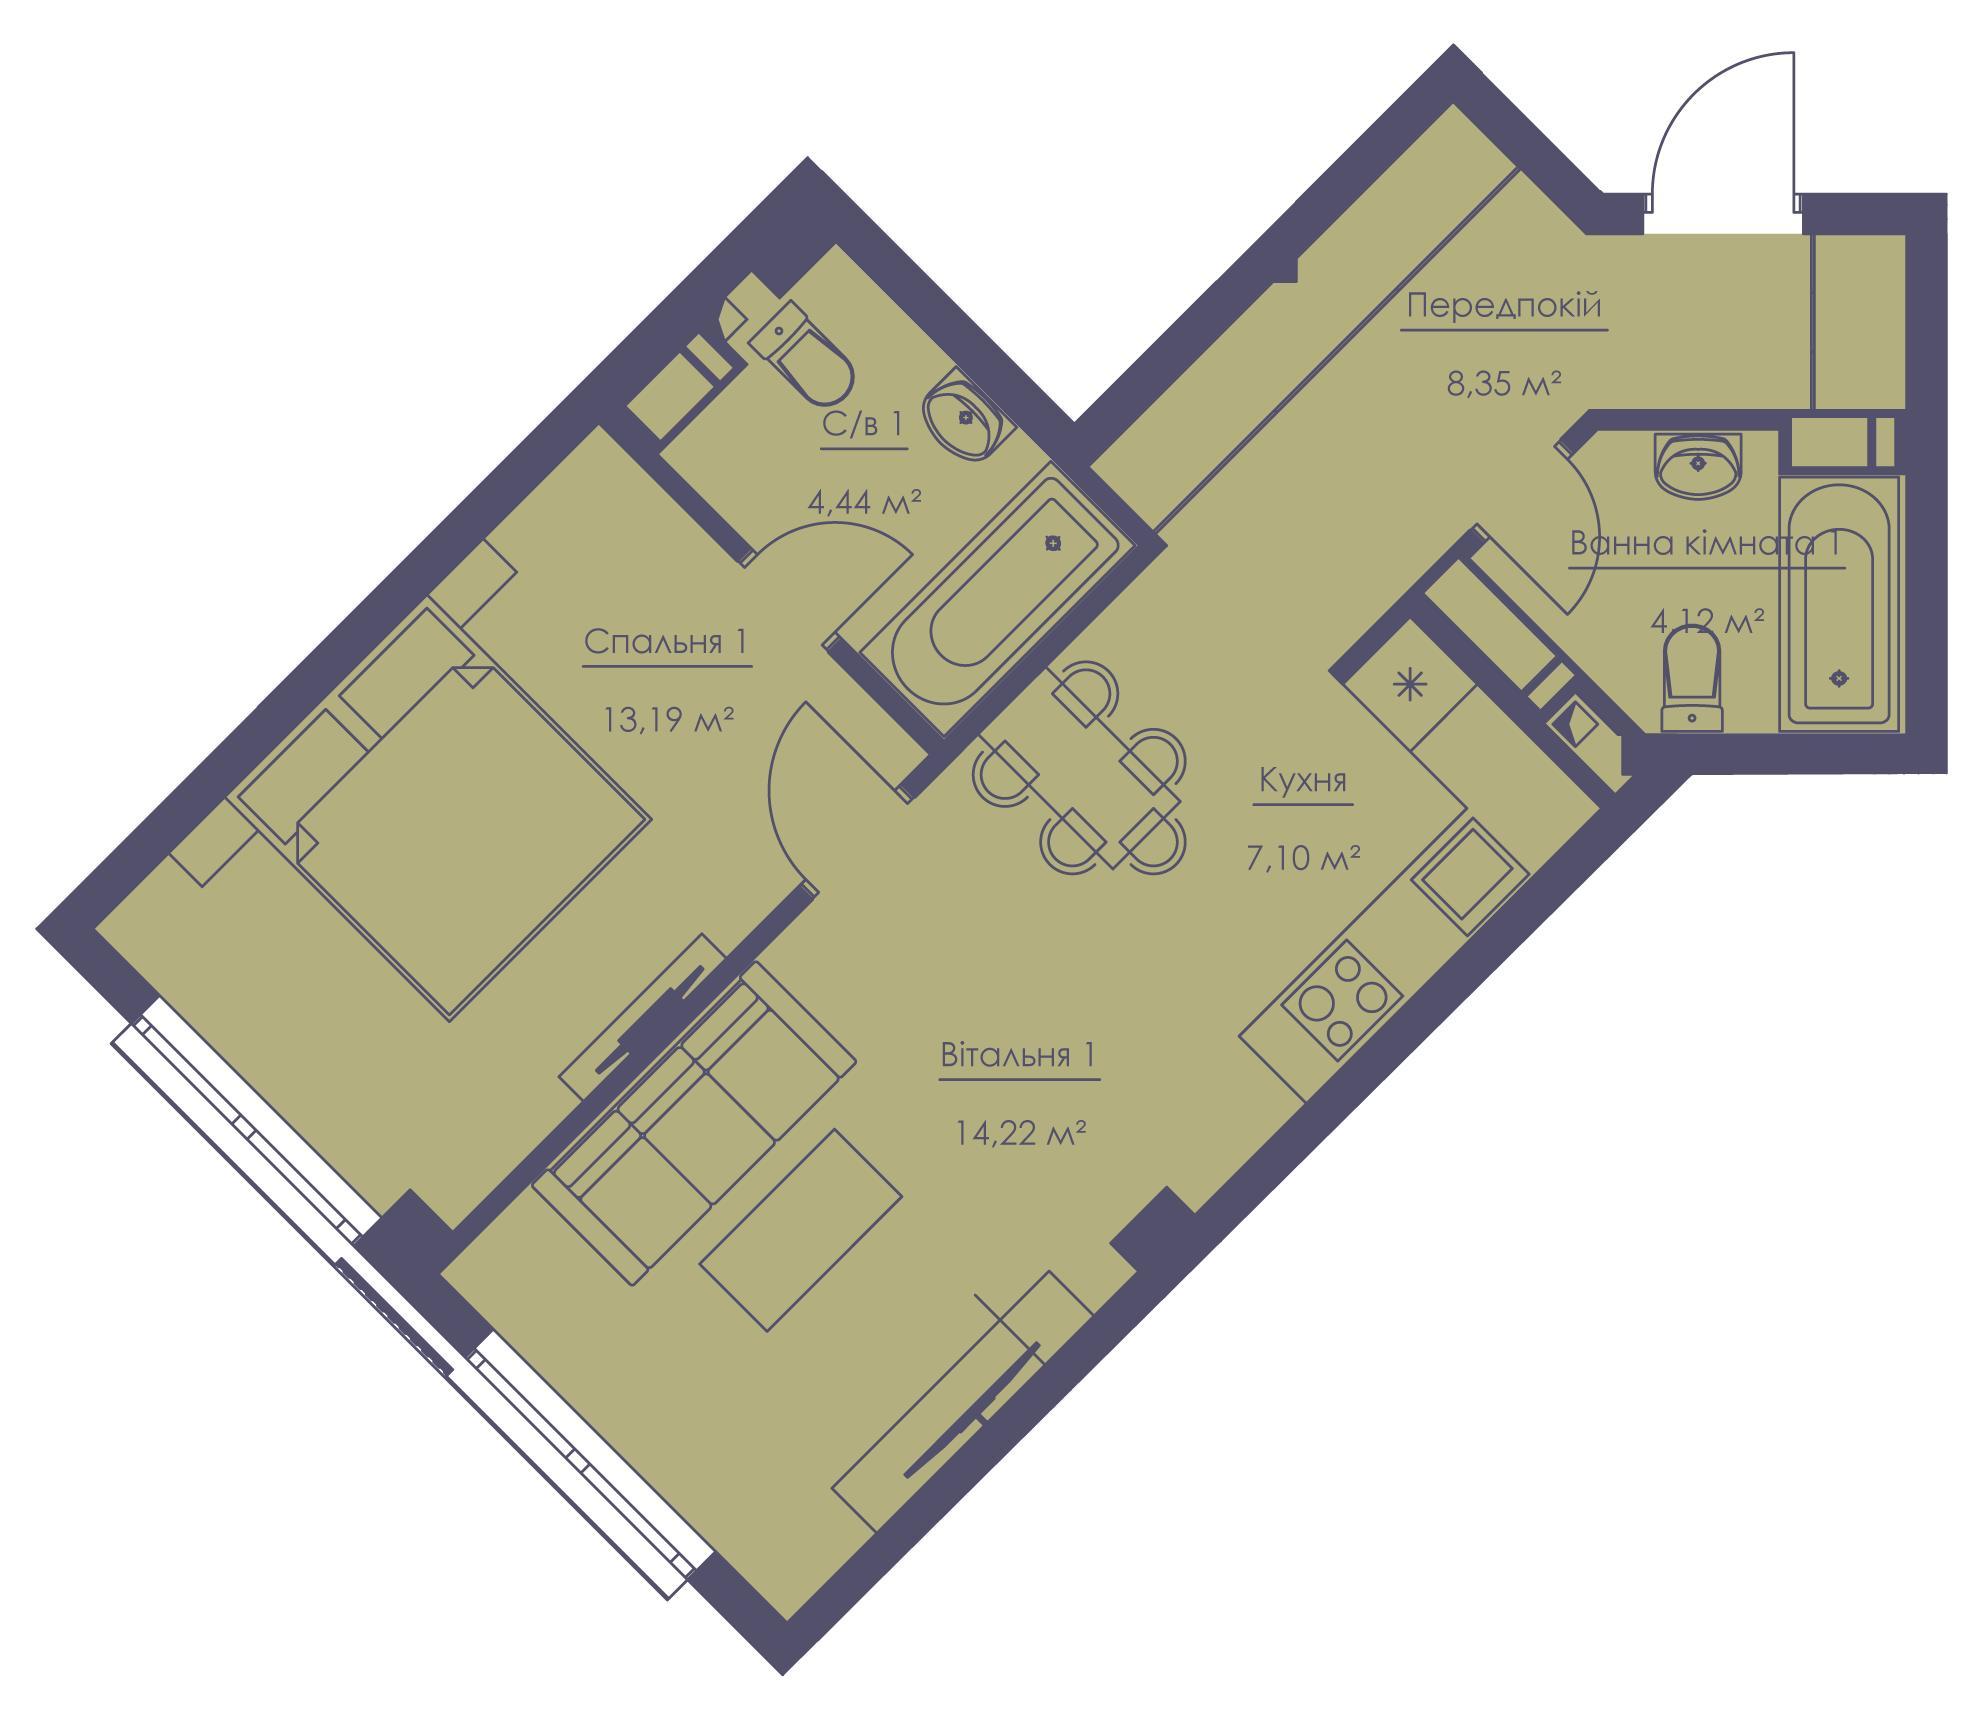 Apartment layout KV_137_3.2m_1_1_3-1